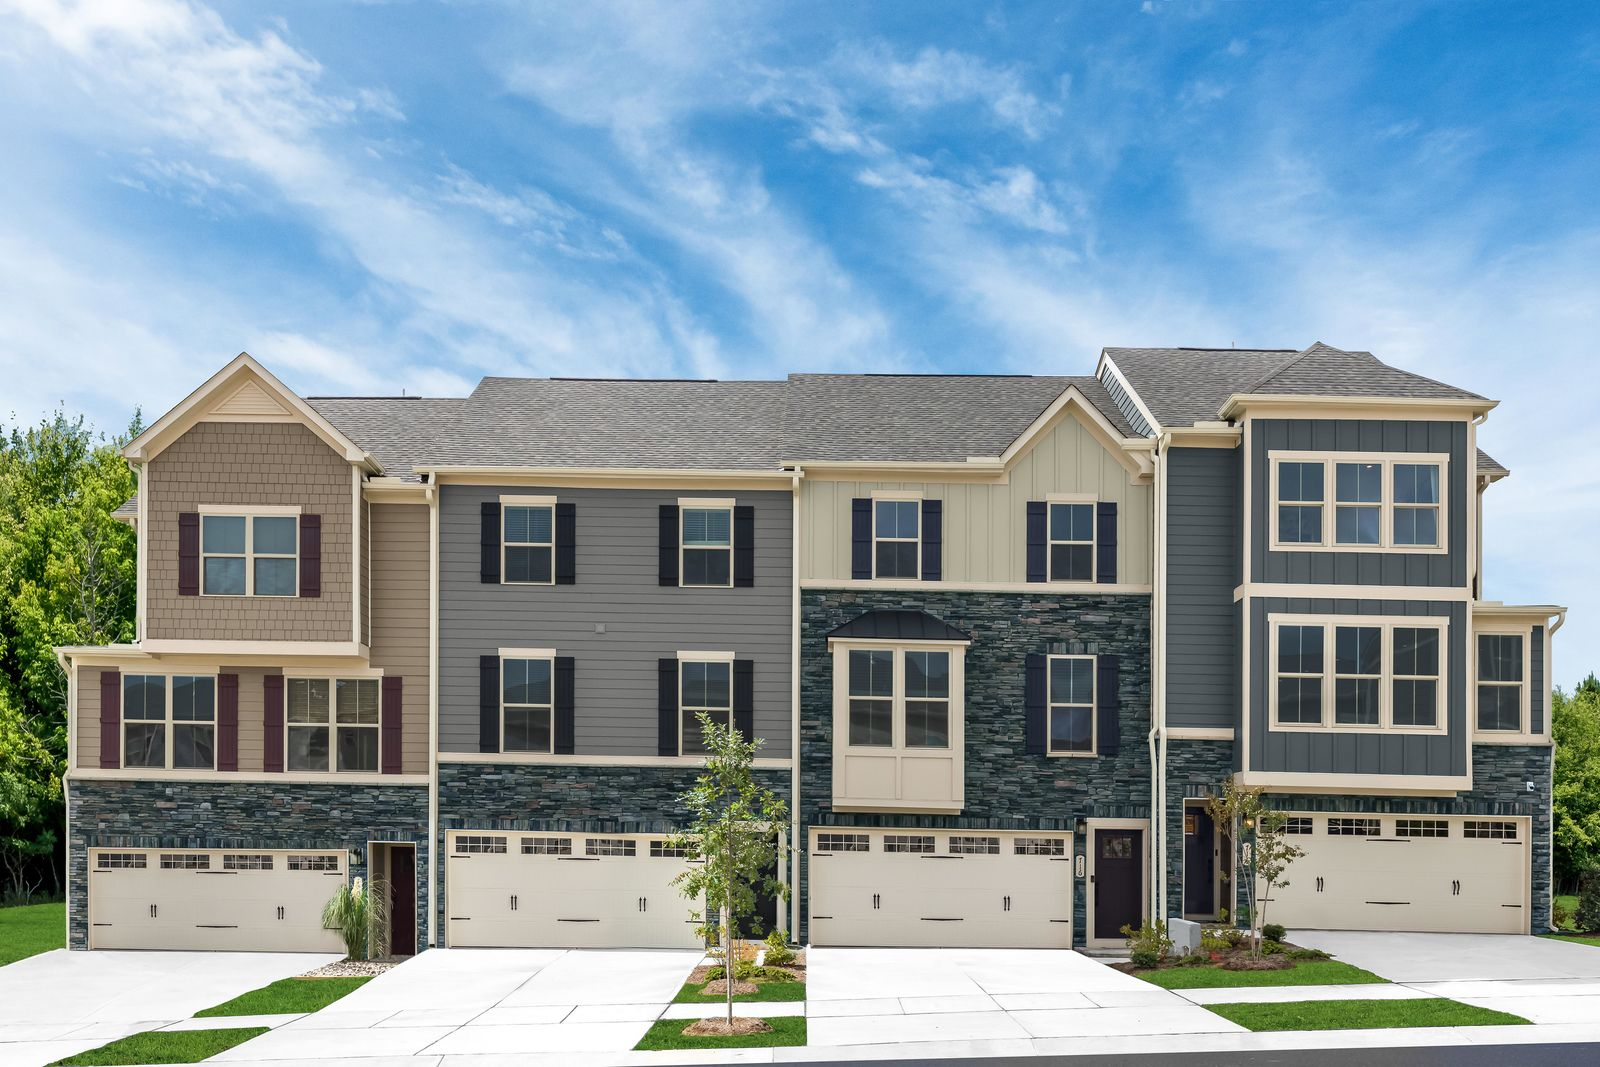 """They say, """"LOCATION! LOCATION! LOCATION!"""" Live in the heart of Verdae:Don't drive through Verdae wishing you could own, but think affordability is out of reach. Welcome to Copper Run a community of luxury townhomes!Schedule your visit!"""